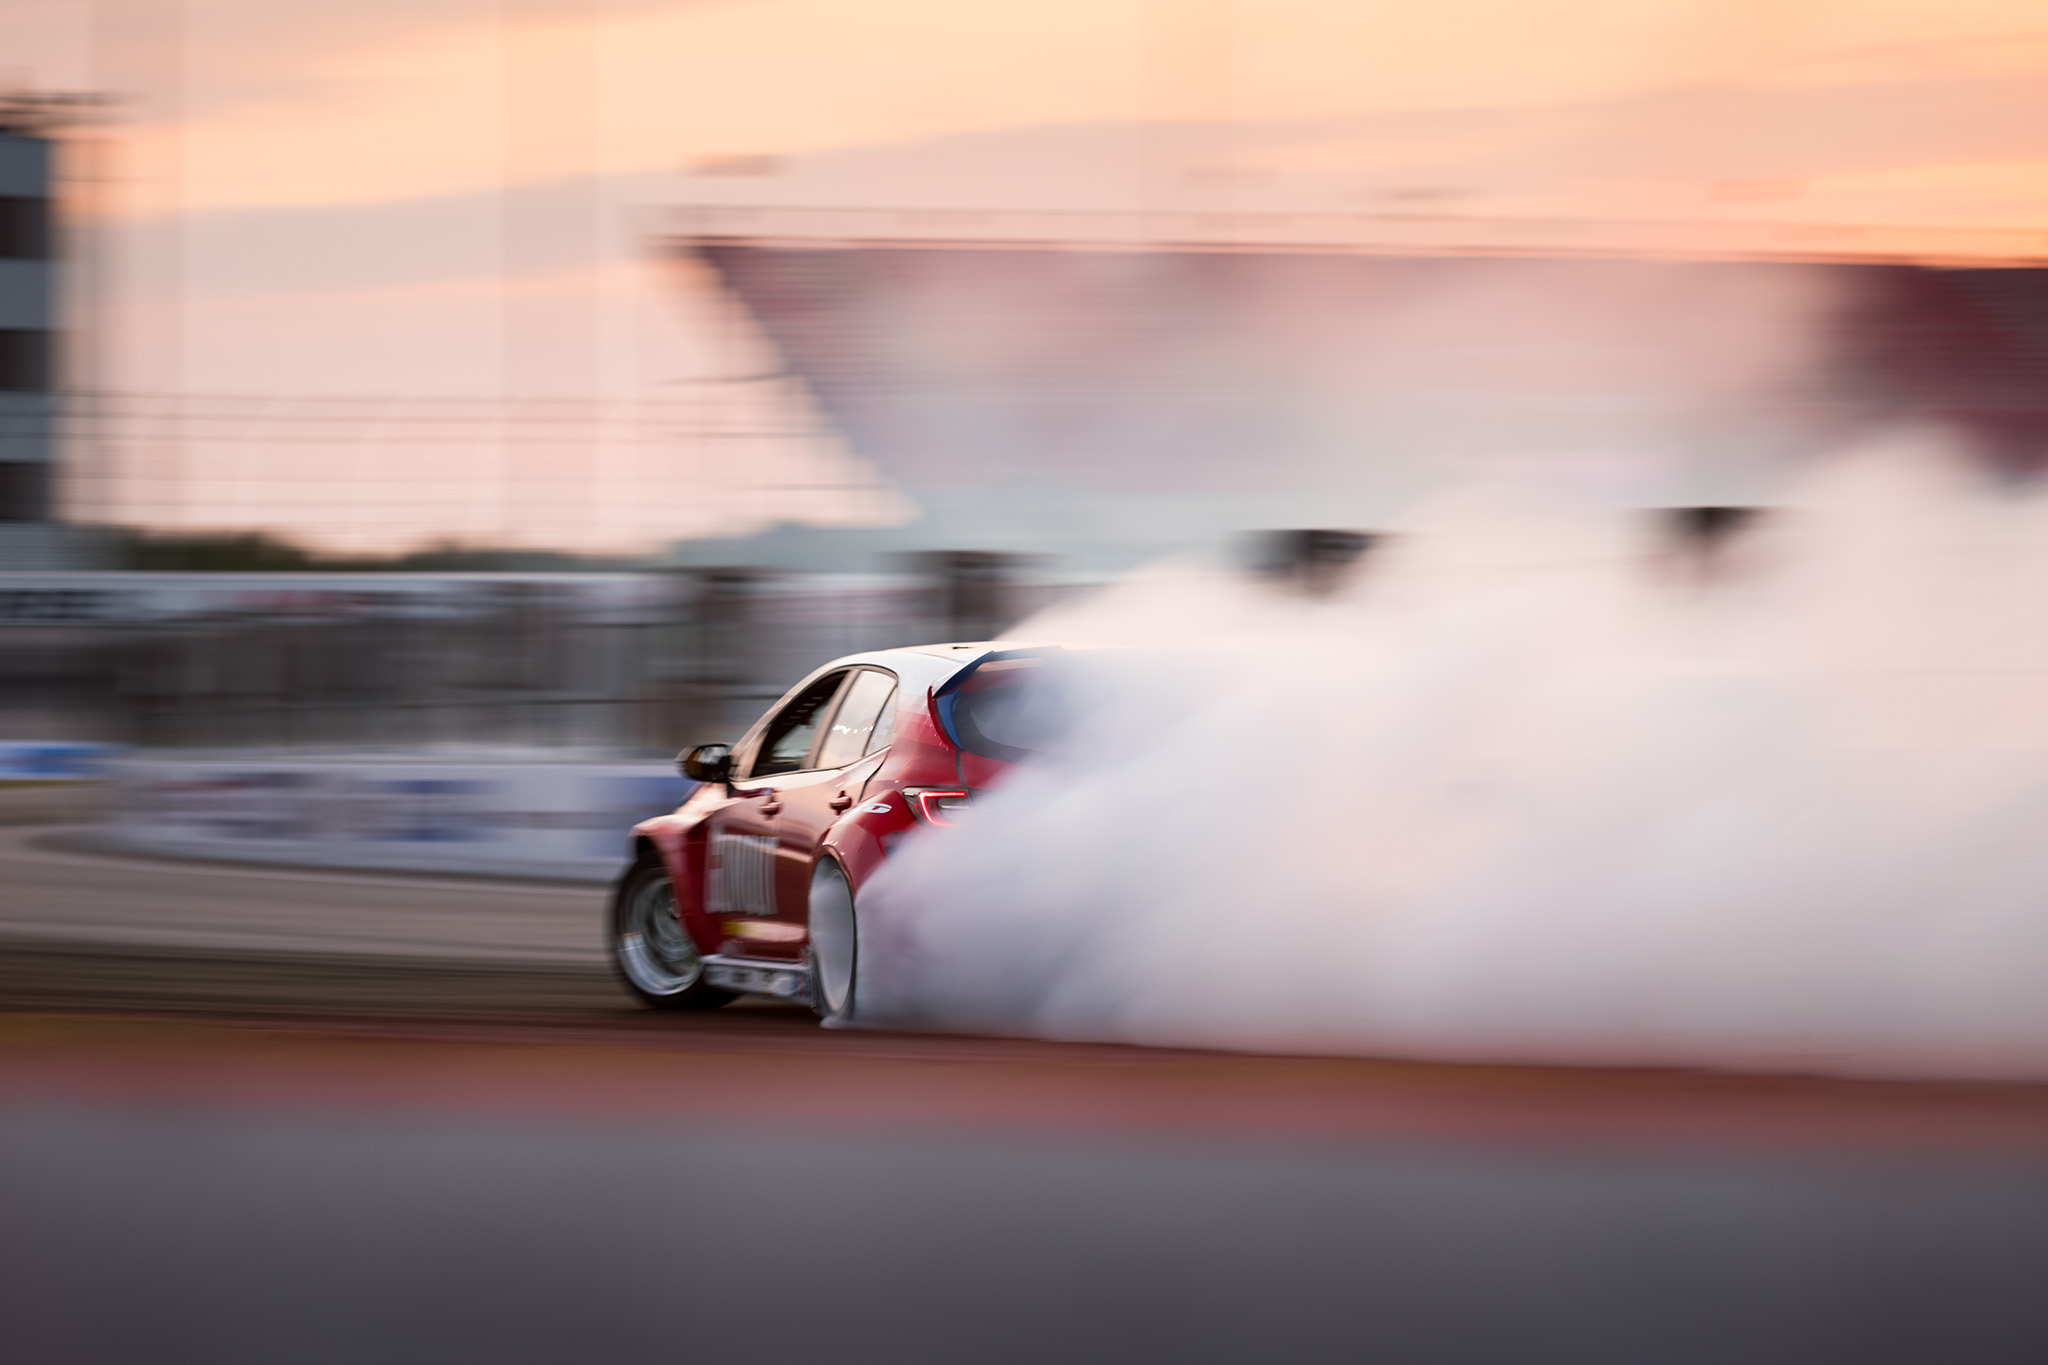 Ryan Tuerck, drifting off into the sunset at Formula D Pro drifting championship 2020 double header Round 2 at St. Louis, motorsports photography by Luke Munnell